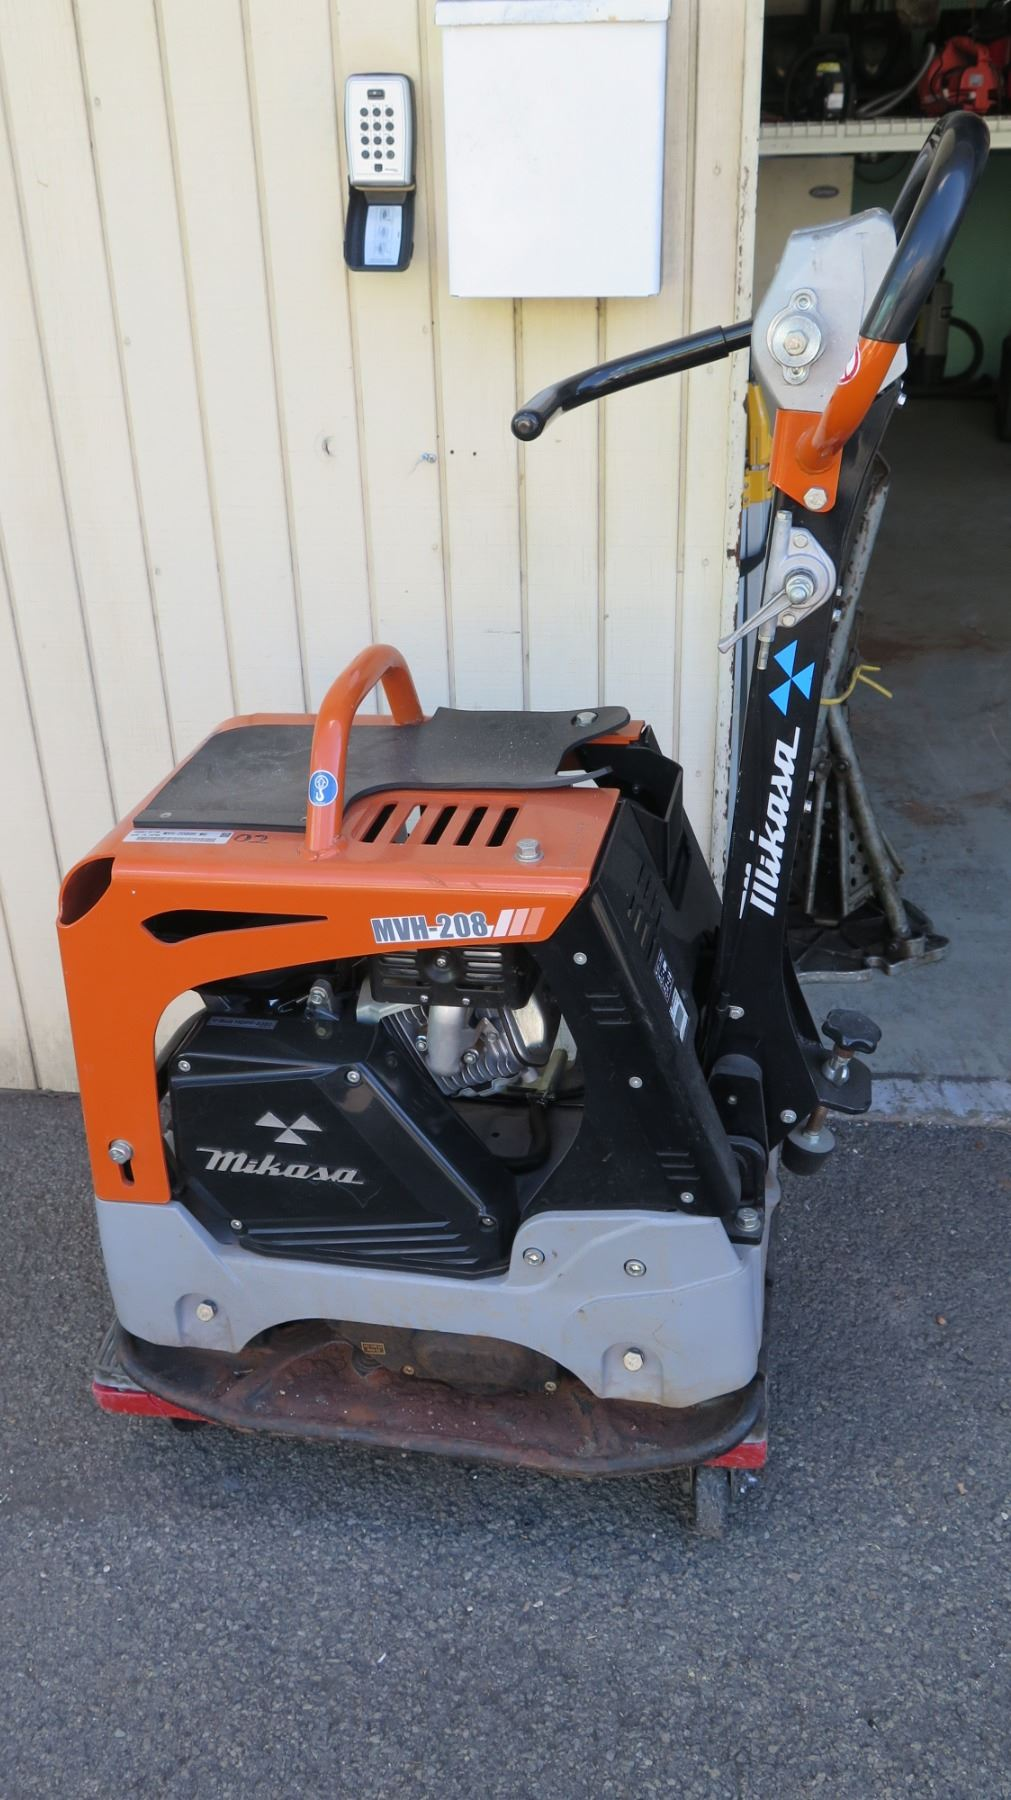 Multiquip Plate Compactor, Model MVH-208GH (missing cover